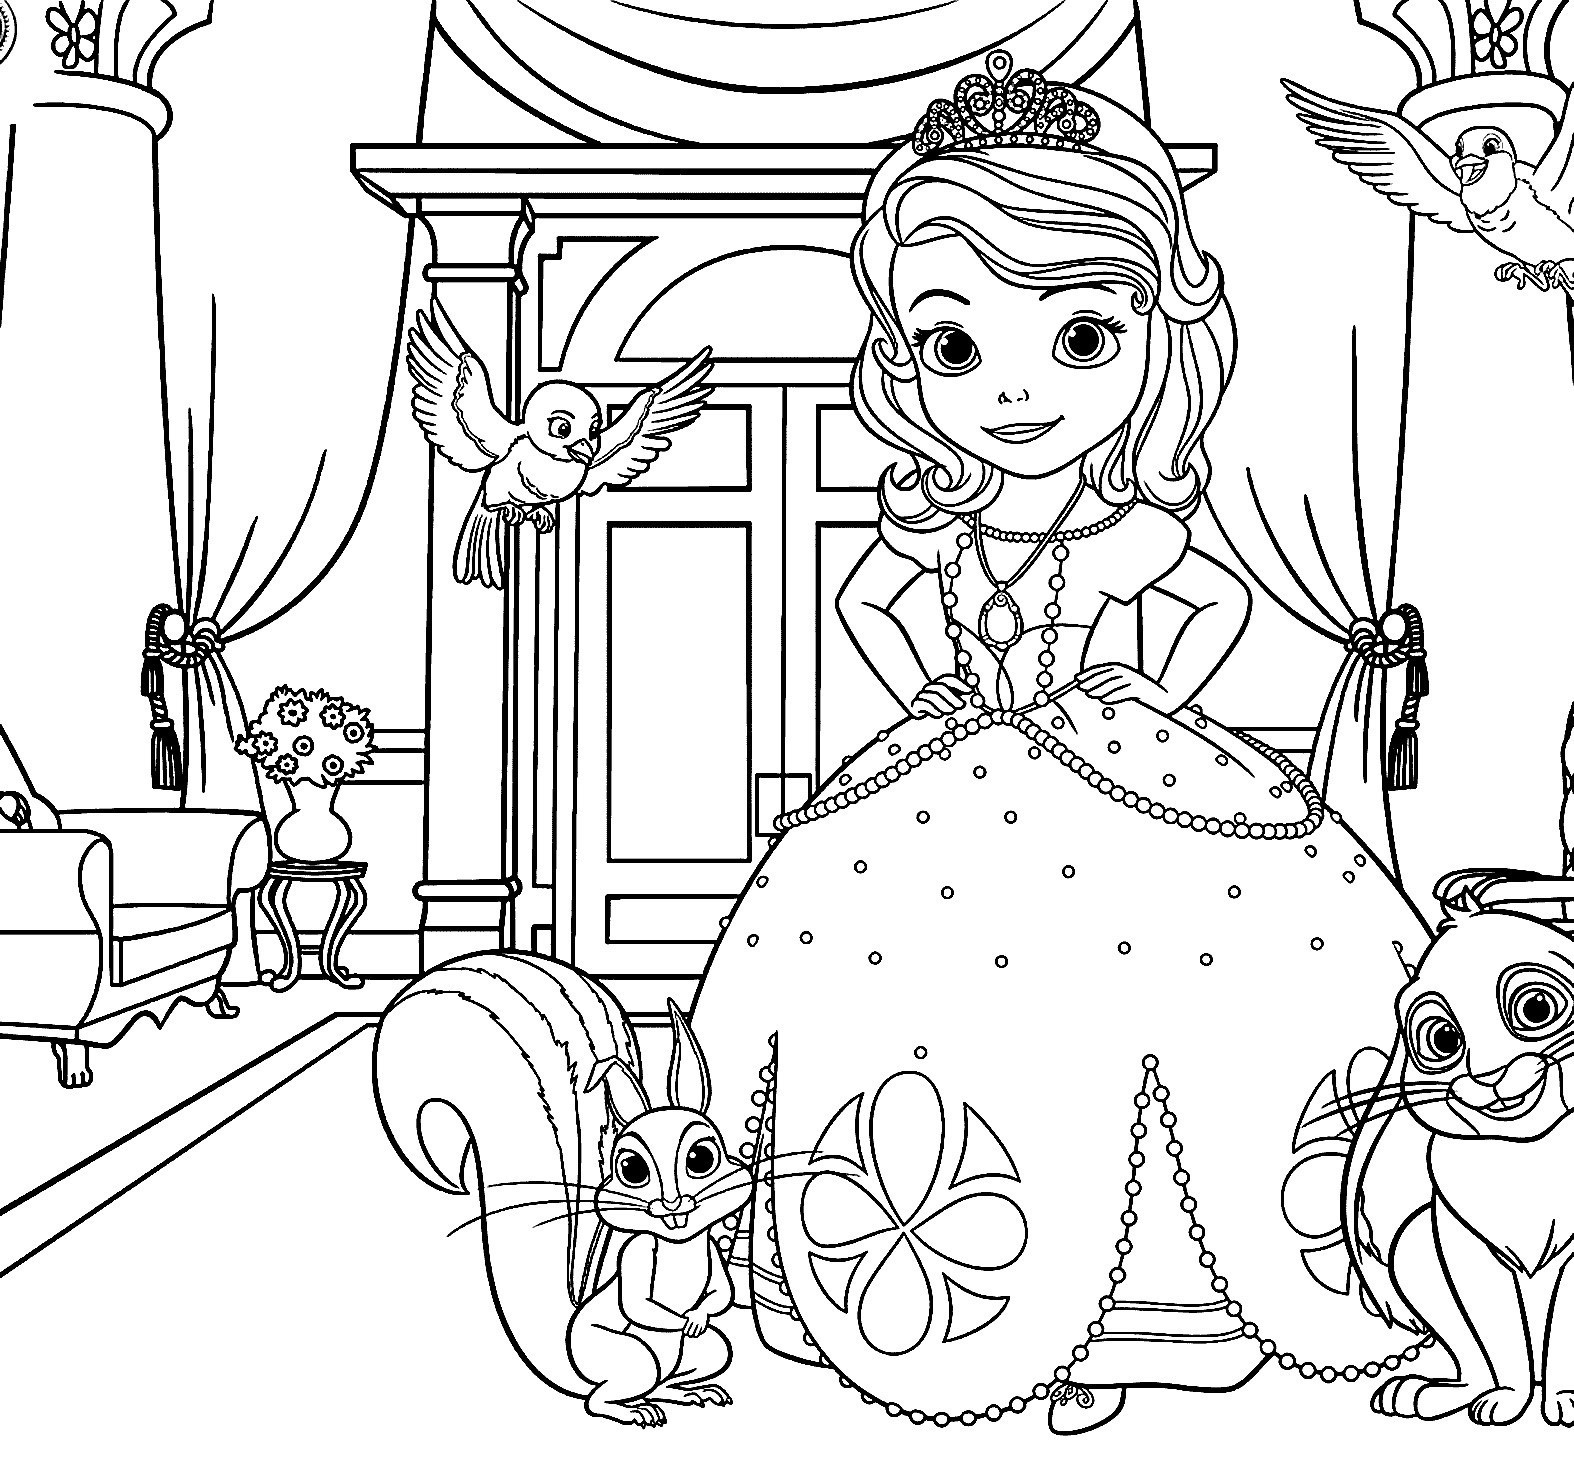 princess sofia coloring page sofia the first coloring page inspirational top 10 disney sofia page princess coloring